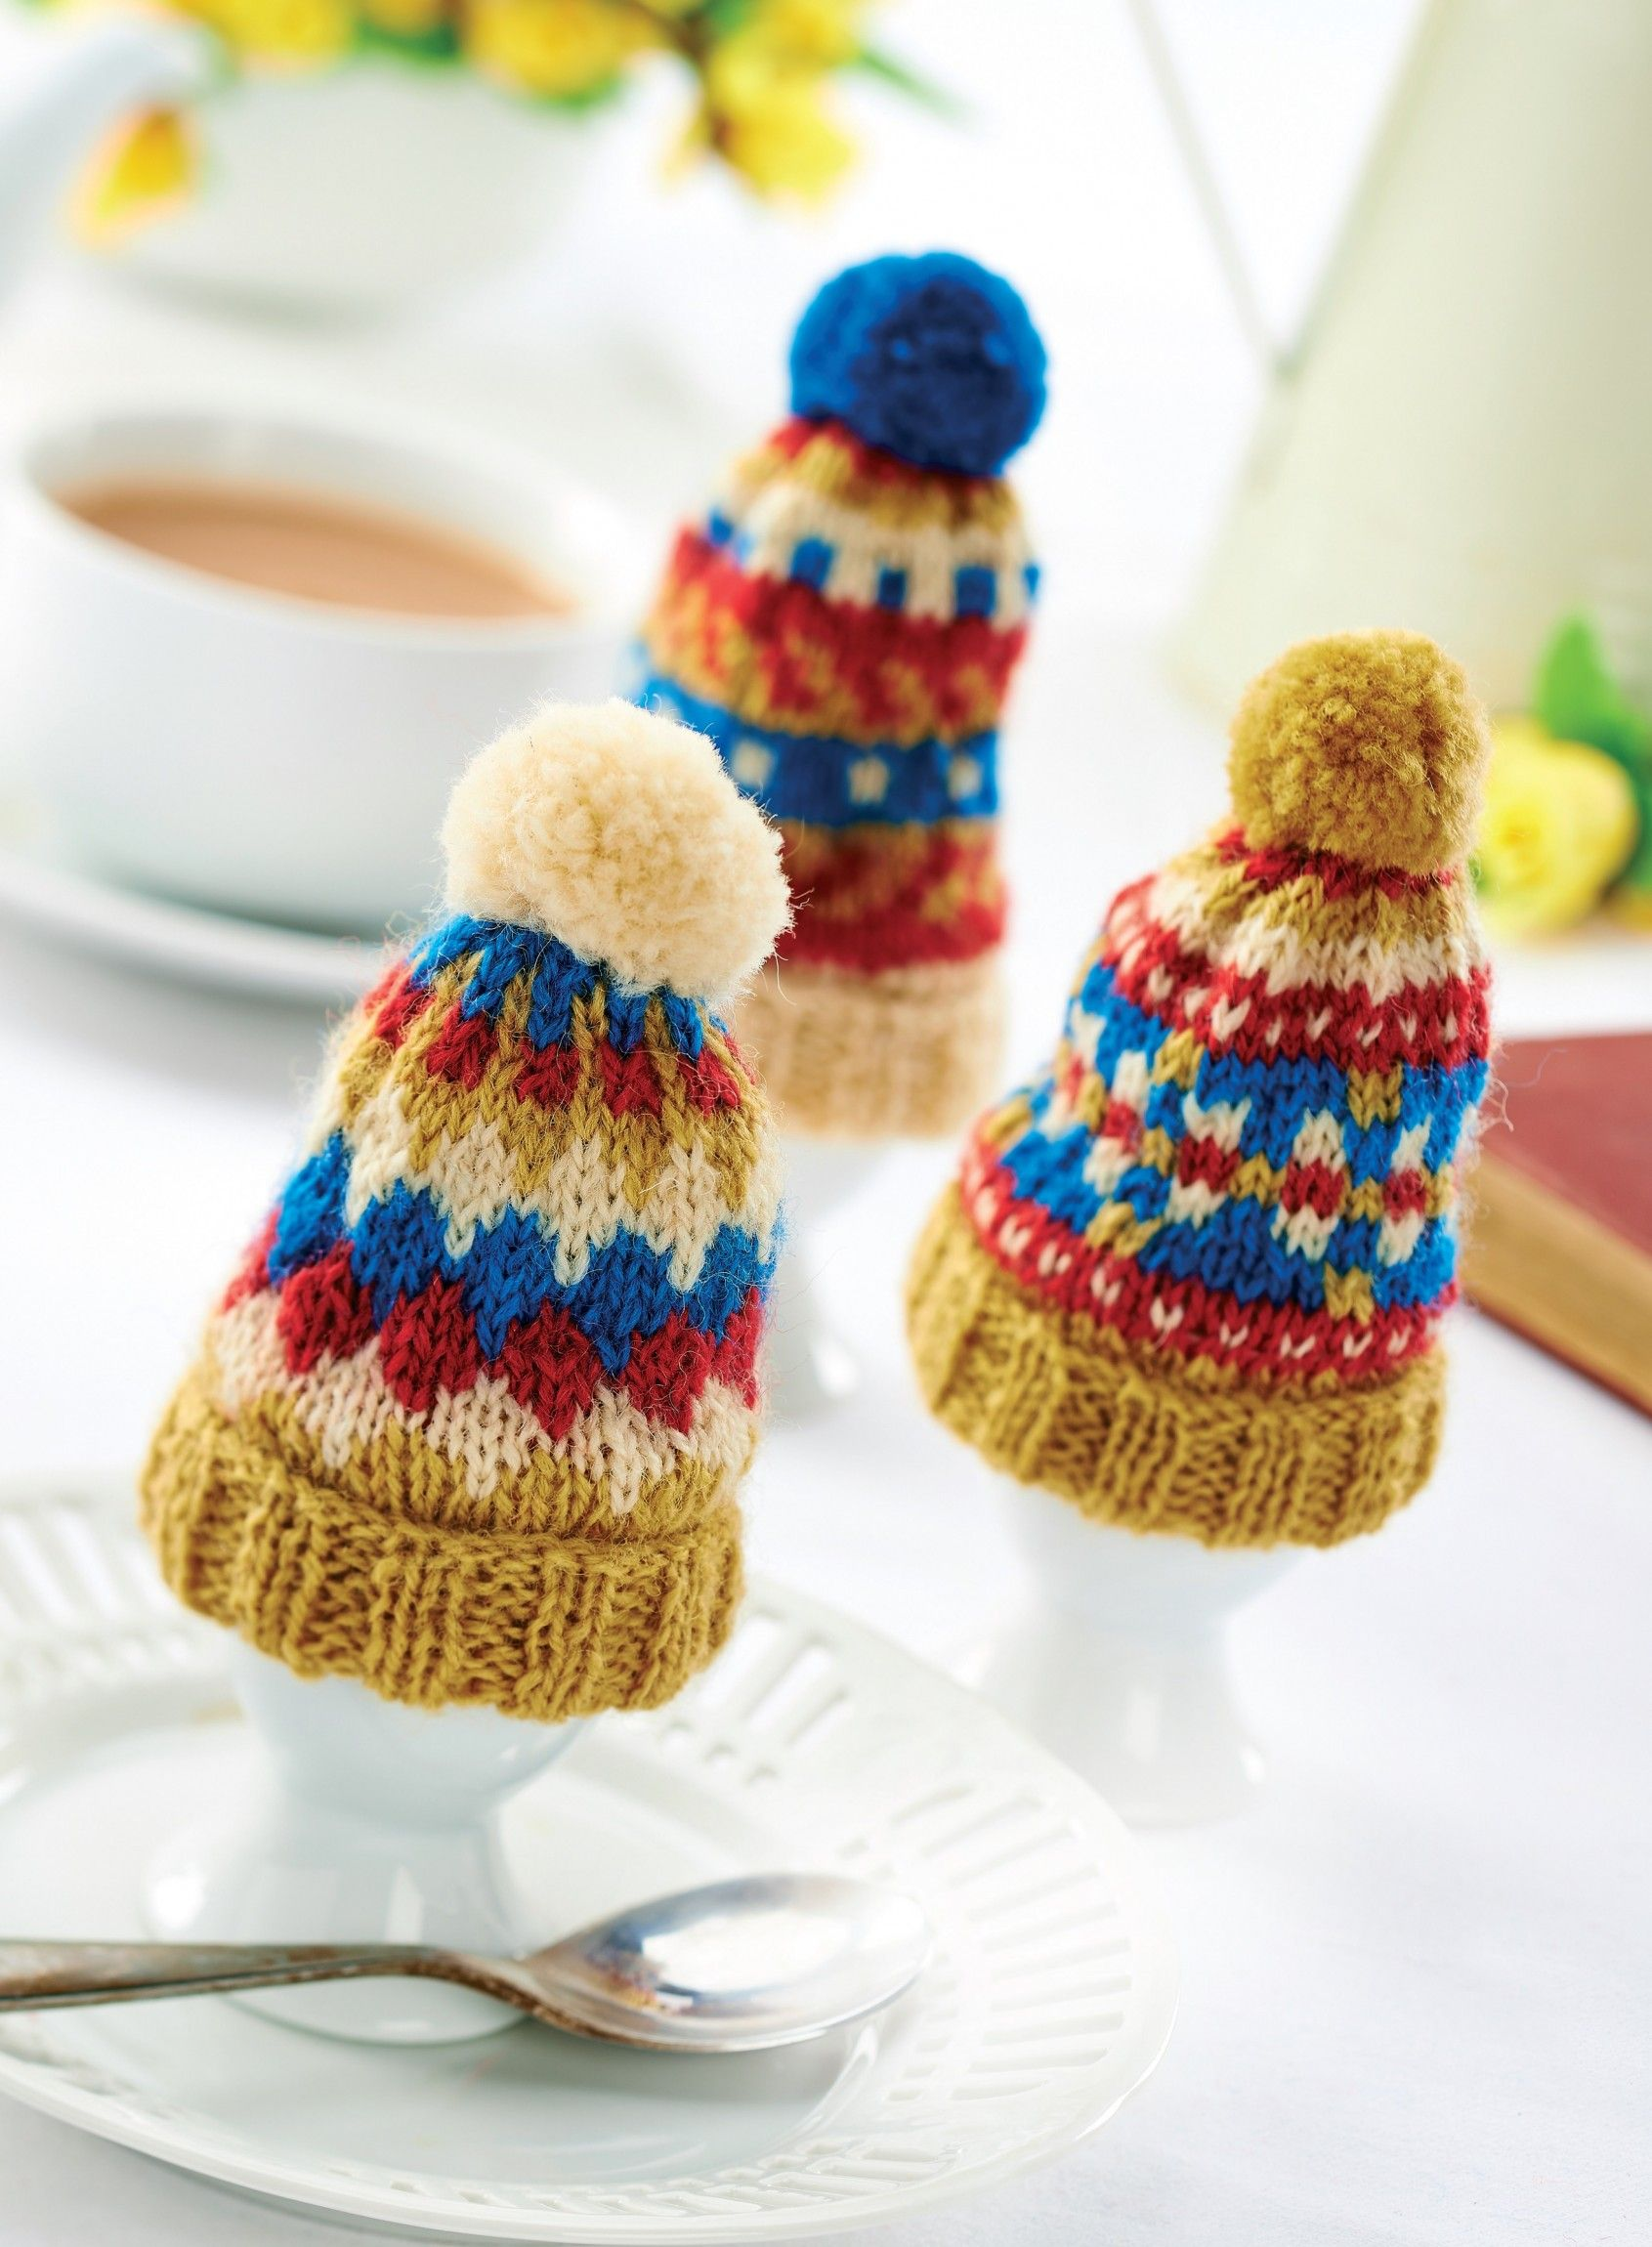 Traditional Tea and Egg Cosy Set With Pom-Poms! | Tea cosy ...